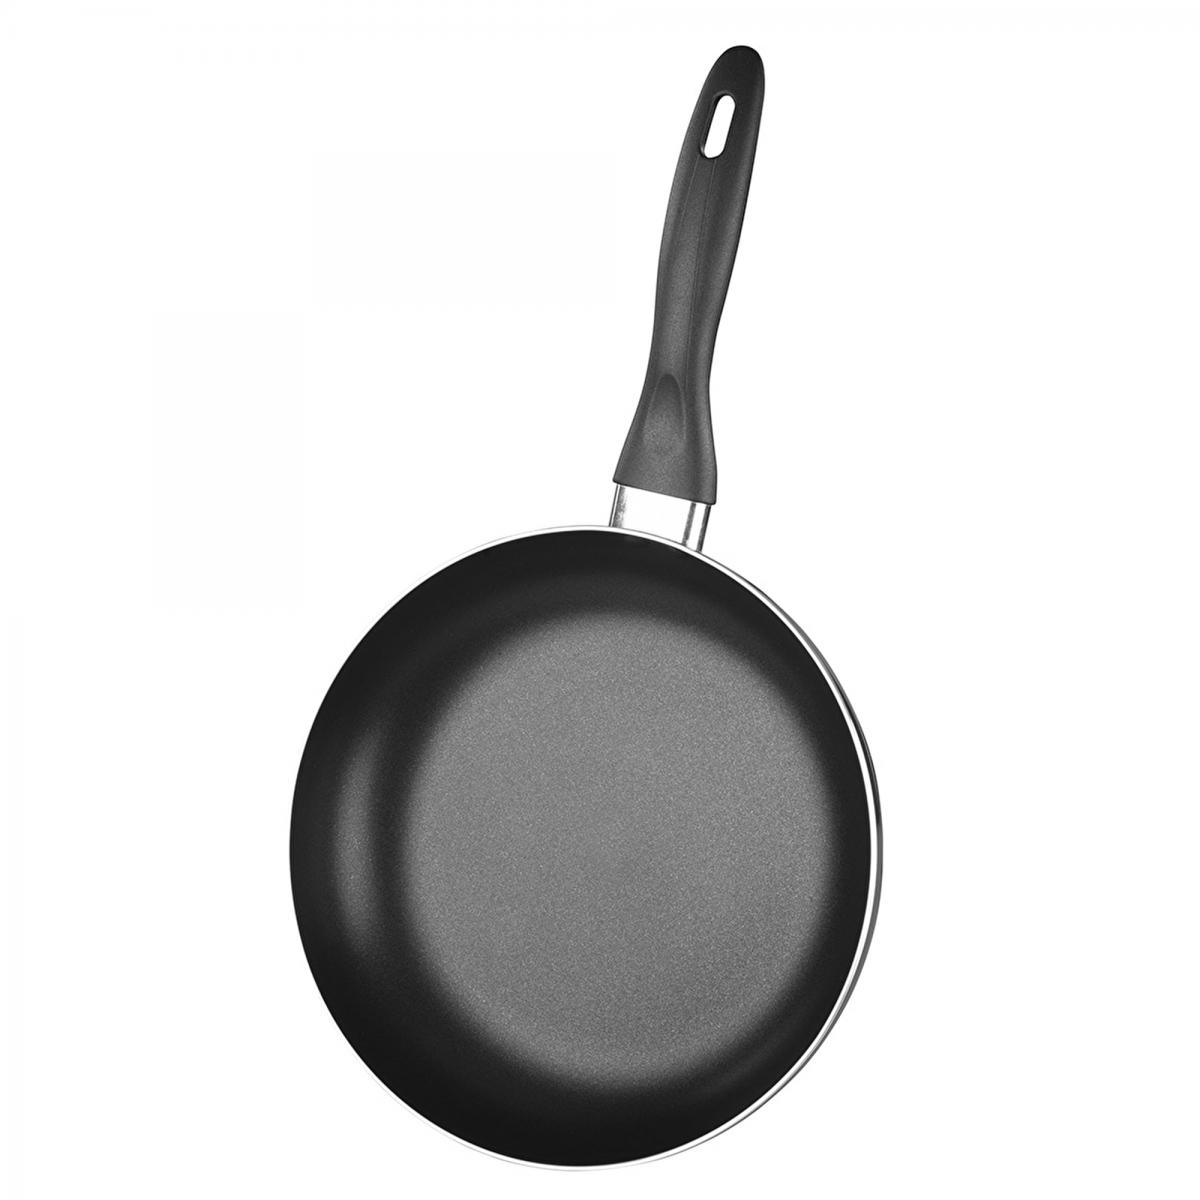 26cm Non Stick Fry Pan with Etched Base – Now Only £6.00